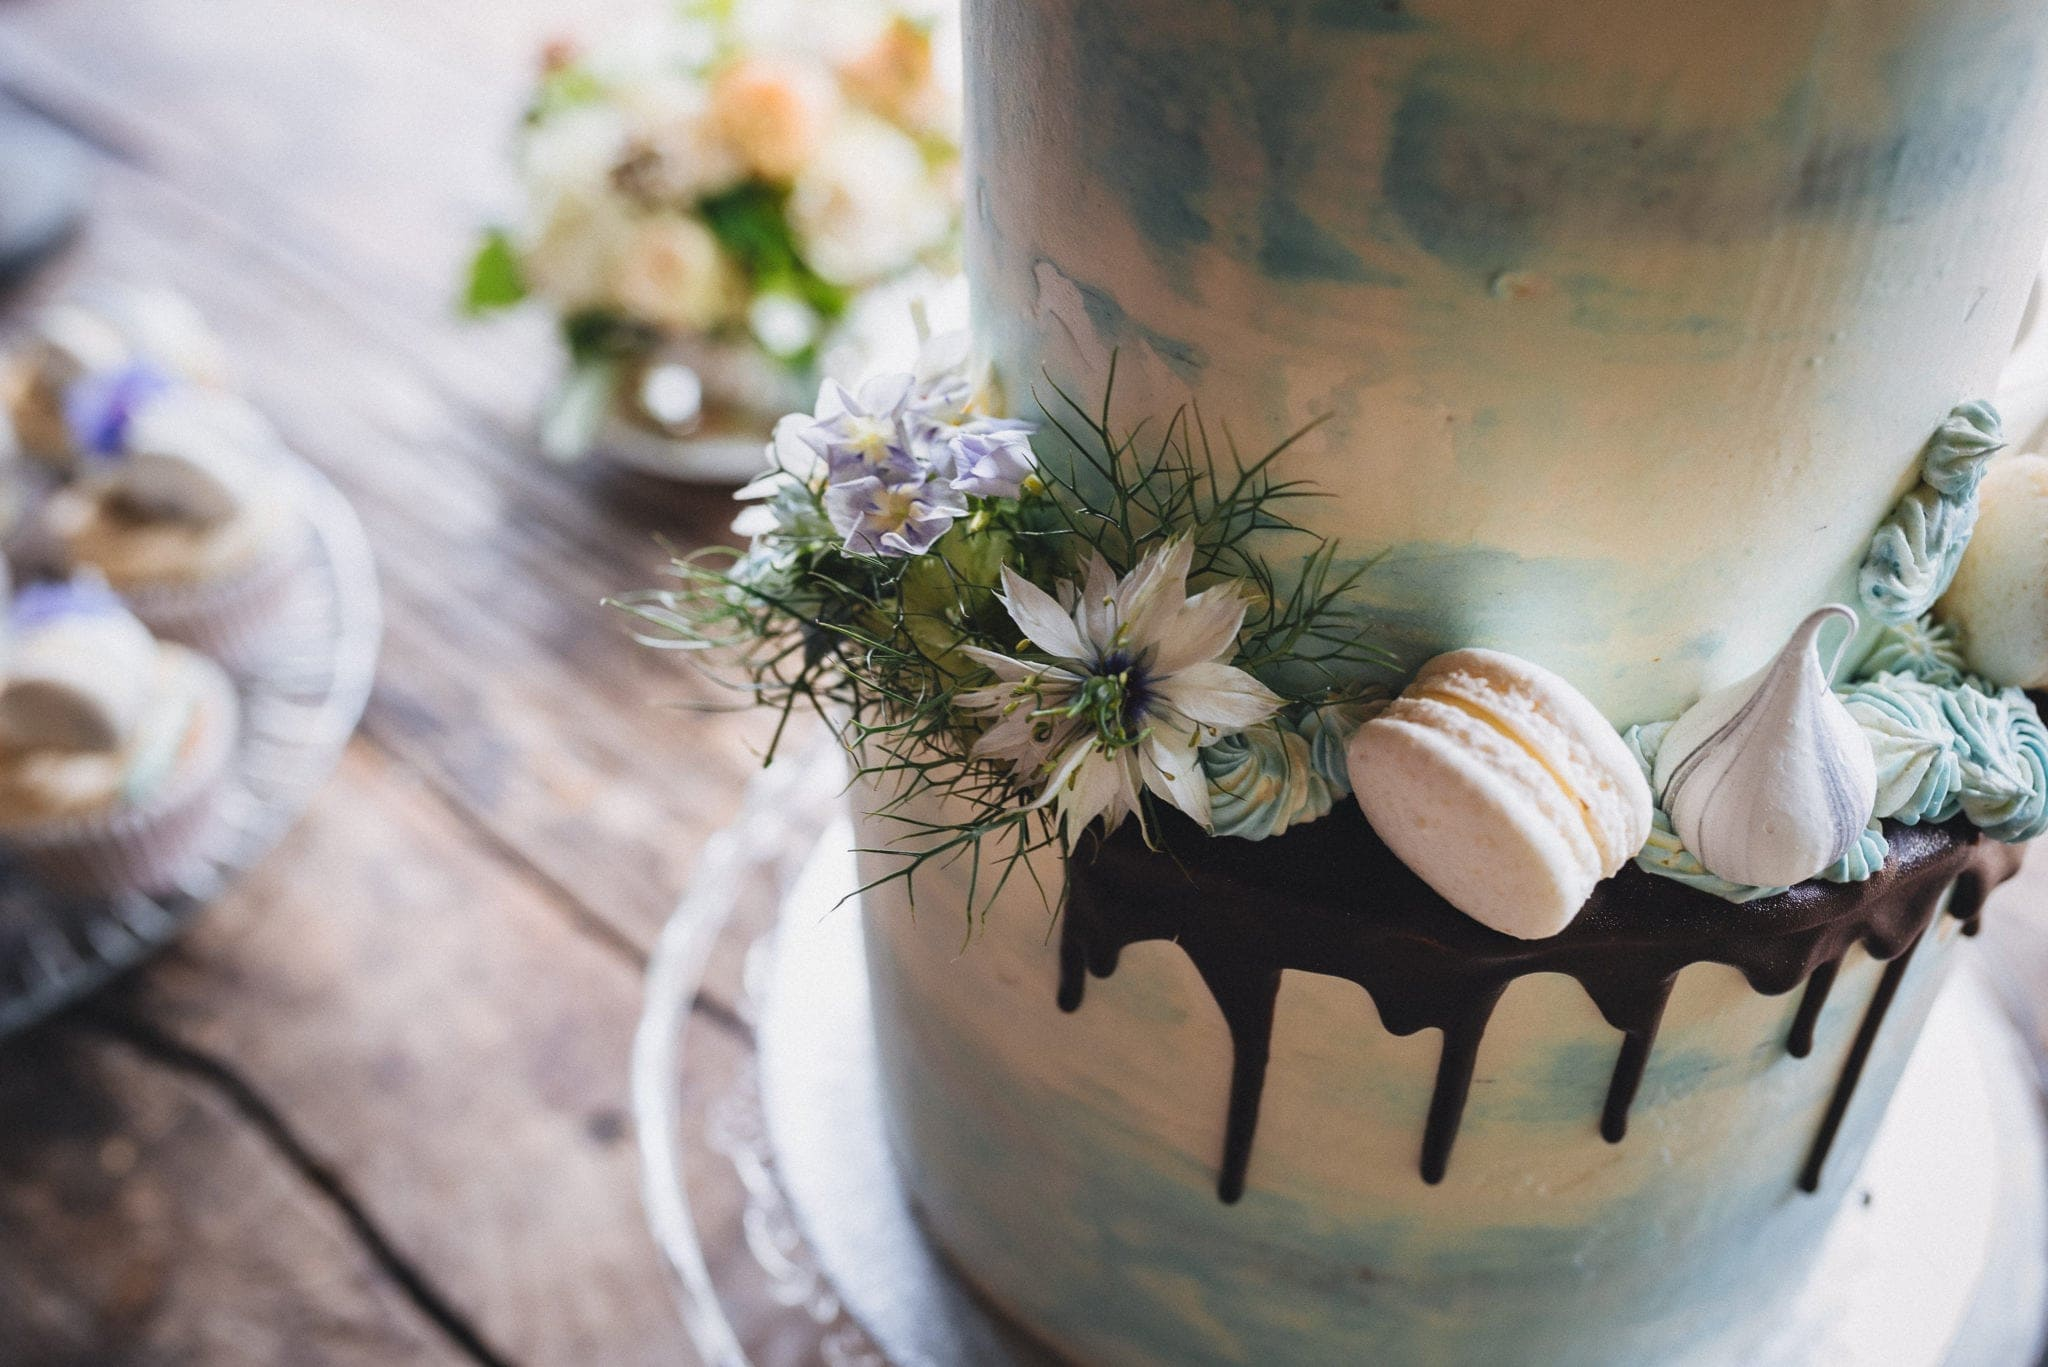 Blue and cream cake with chocolate drip, flowers and macarons